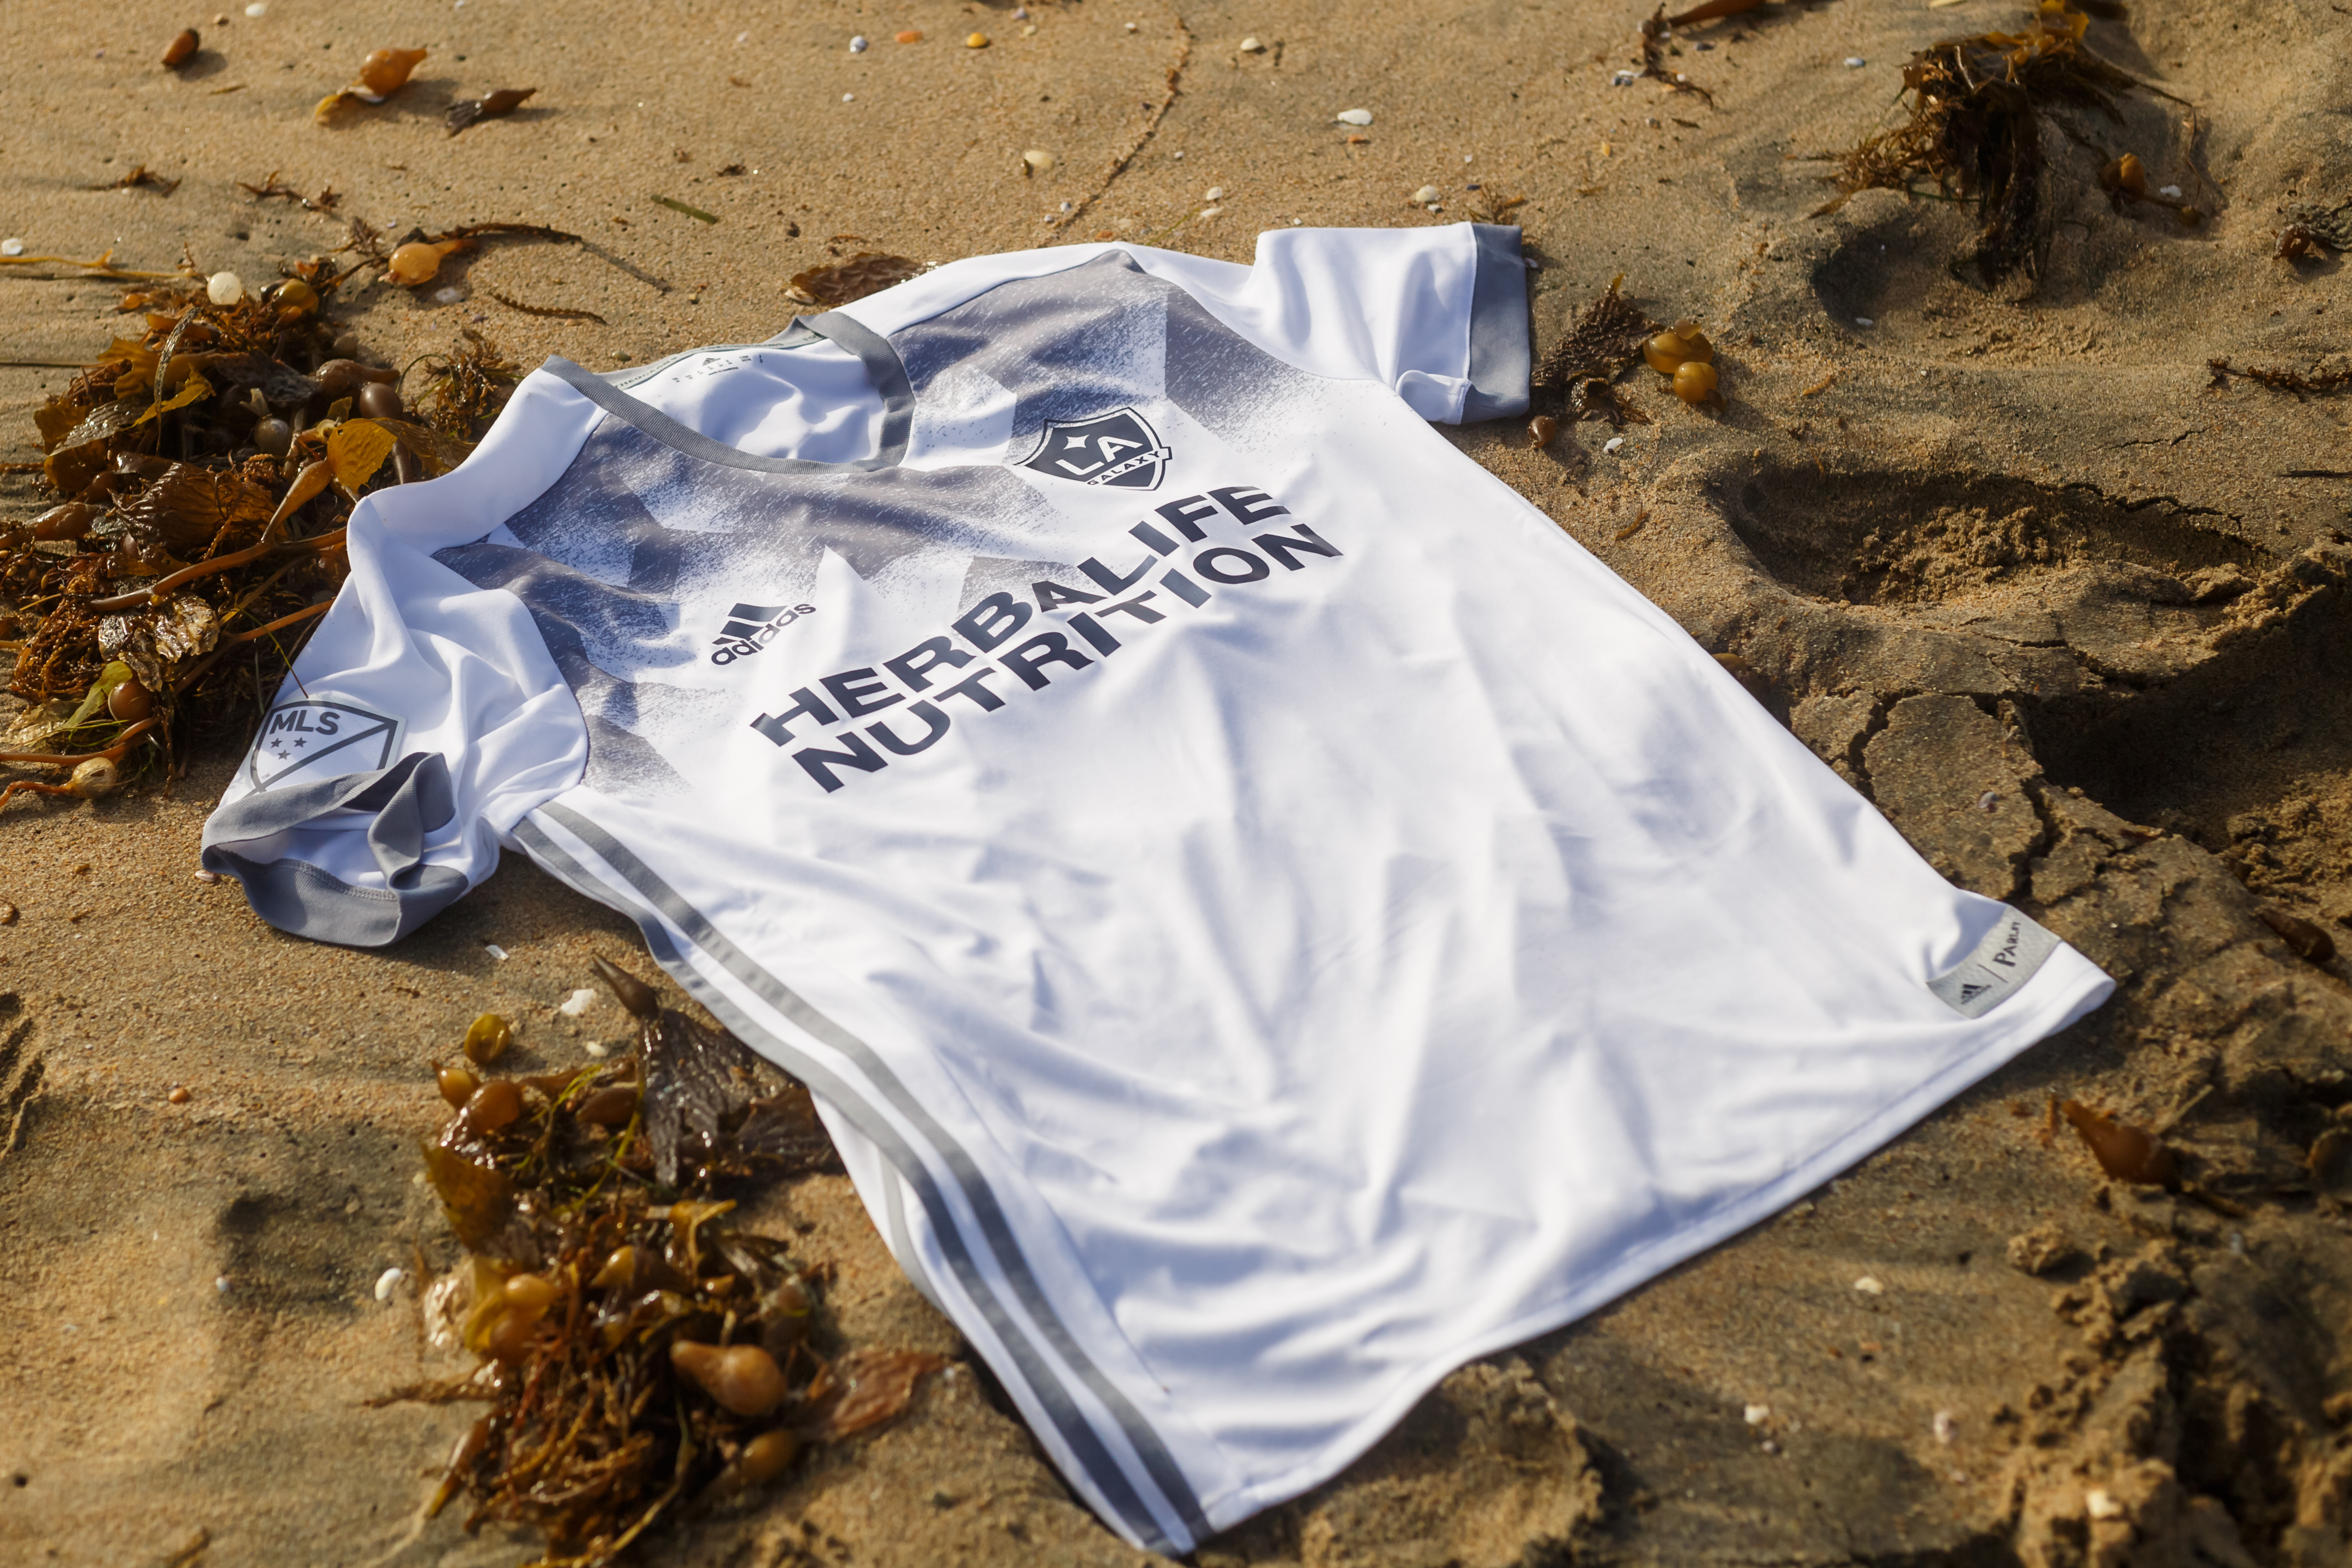 45a0f3757 LA Galaxy to debut first MLS Jerseys made from Parley Ocean Plastic™ during  match on April 23 at StubHub Center vs. Seattle Sounders FC as part of  Protect ...